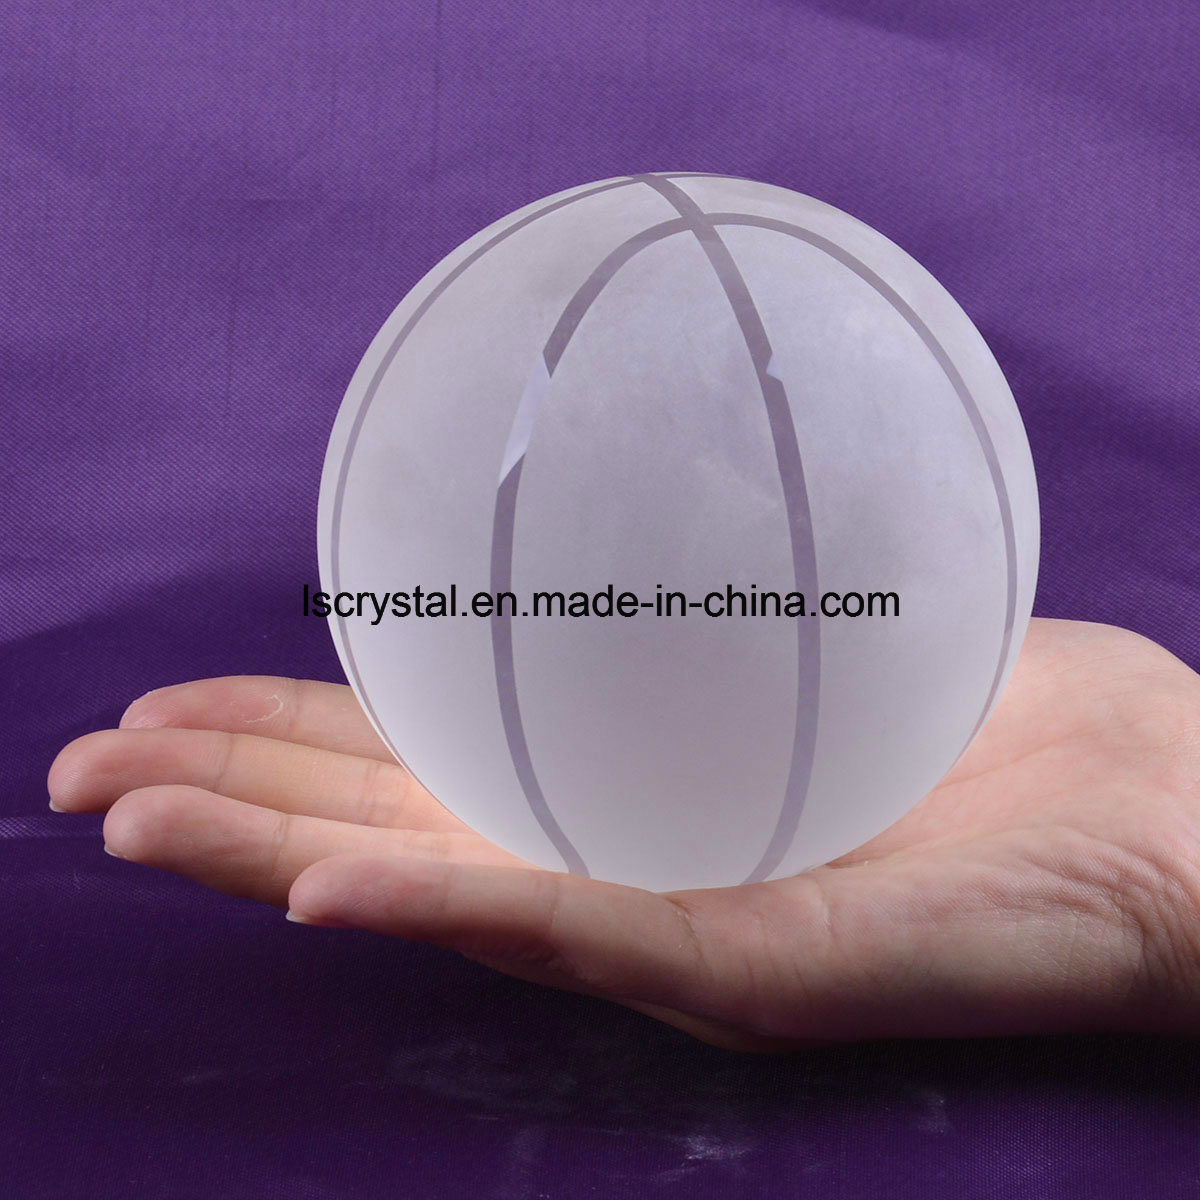 100mm Crystal Clear Glass Basketball for Souvenir Ball